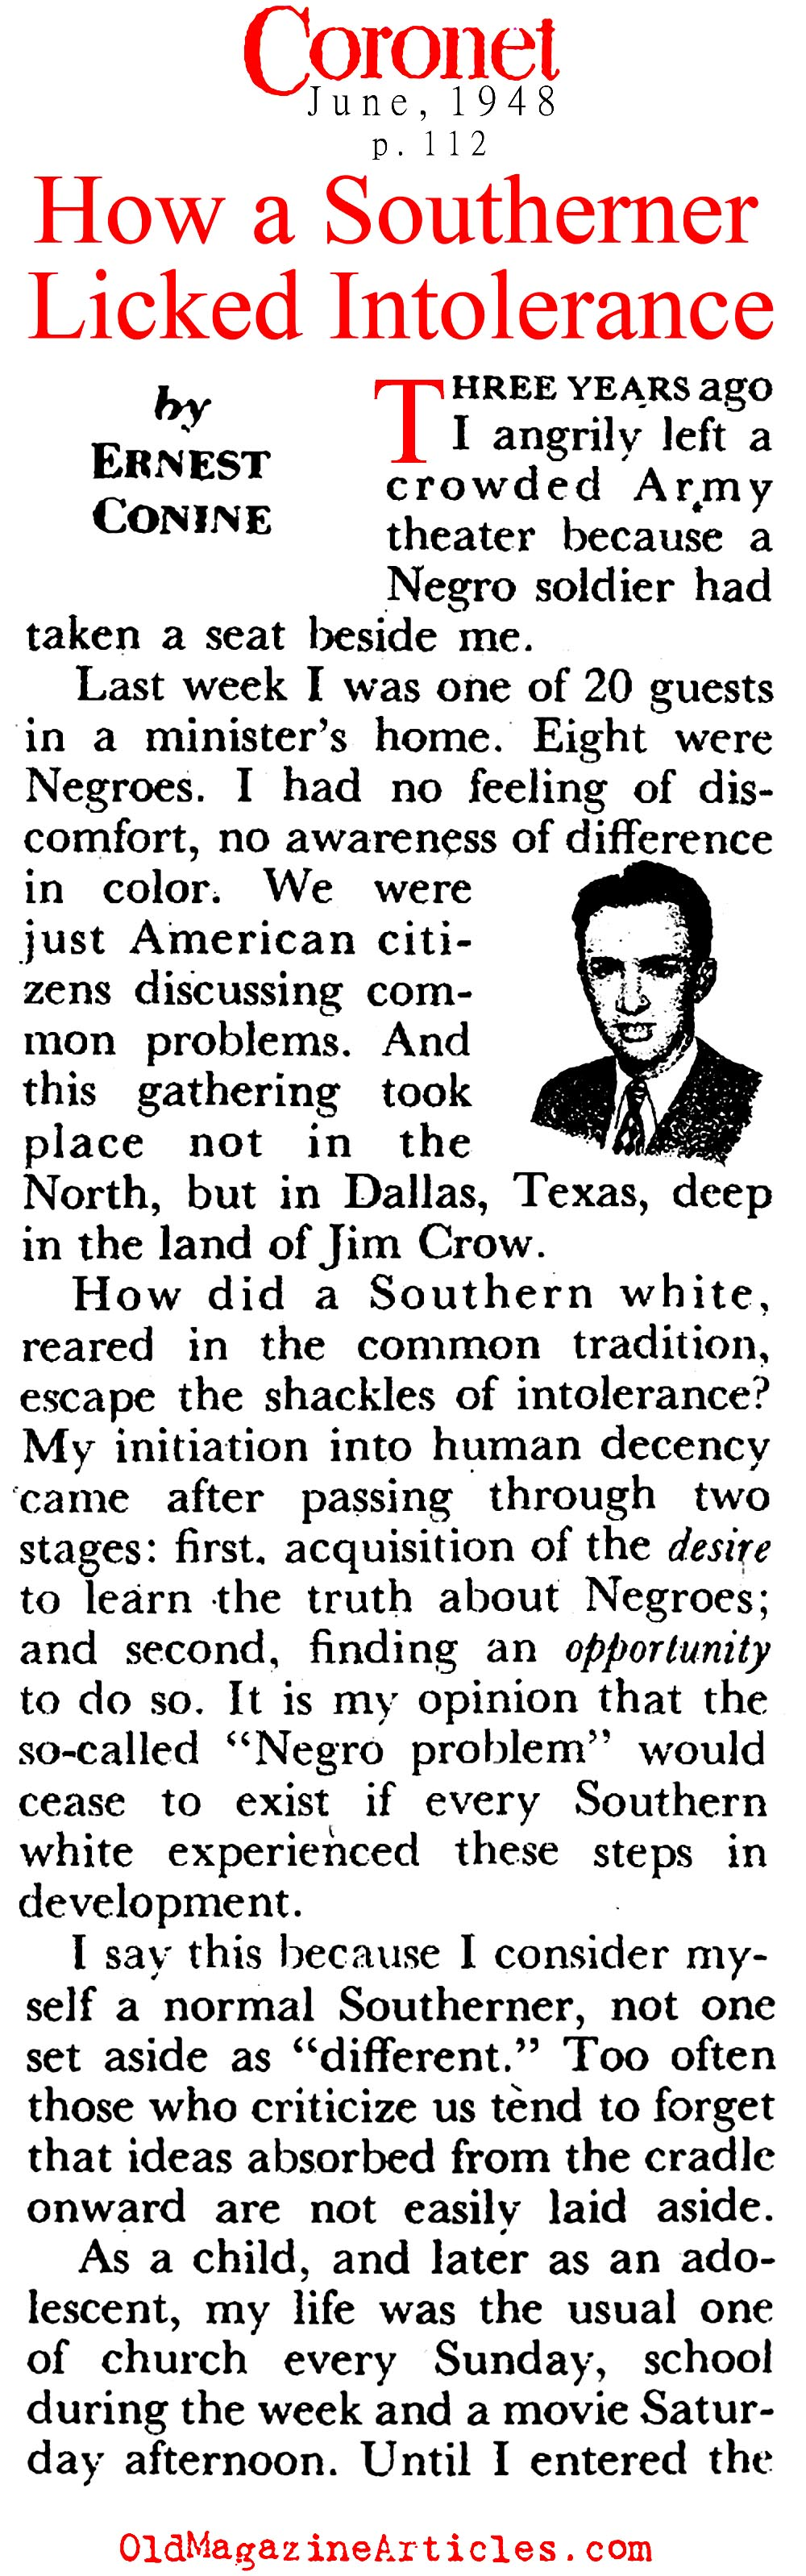 How a Southerner Overcame His Racist Attitudes  (Coronet Magazine, 1948)